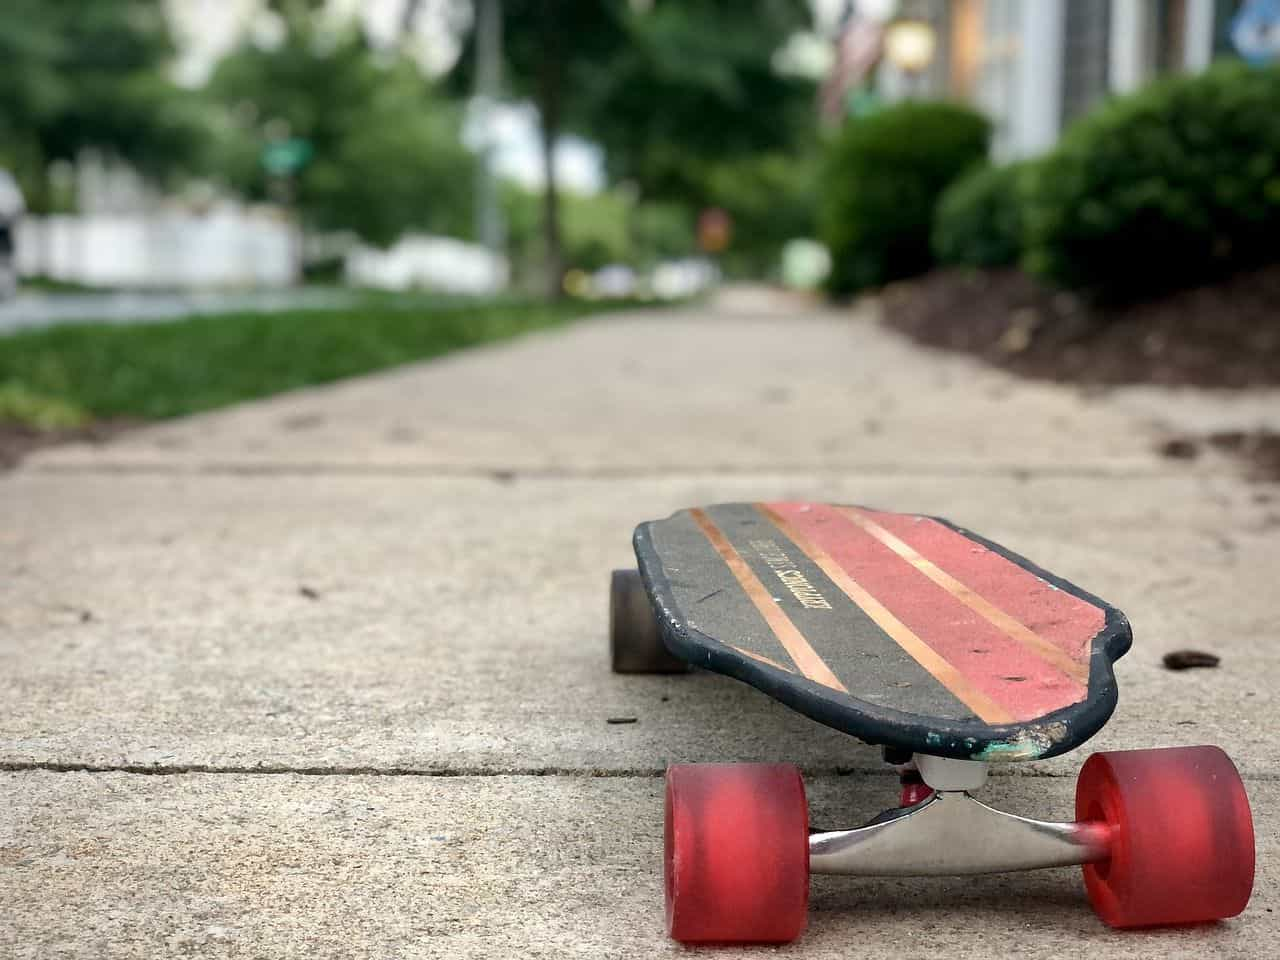 How much does it cost for a good skateboard?